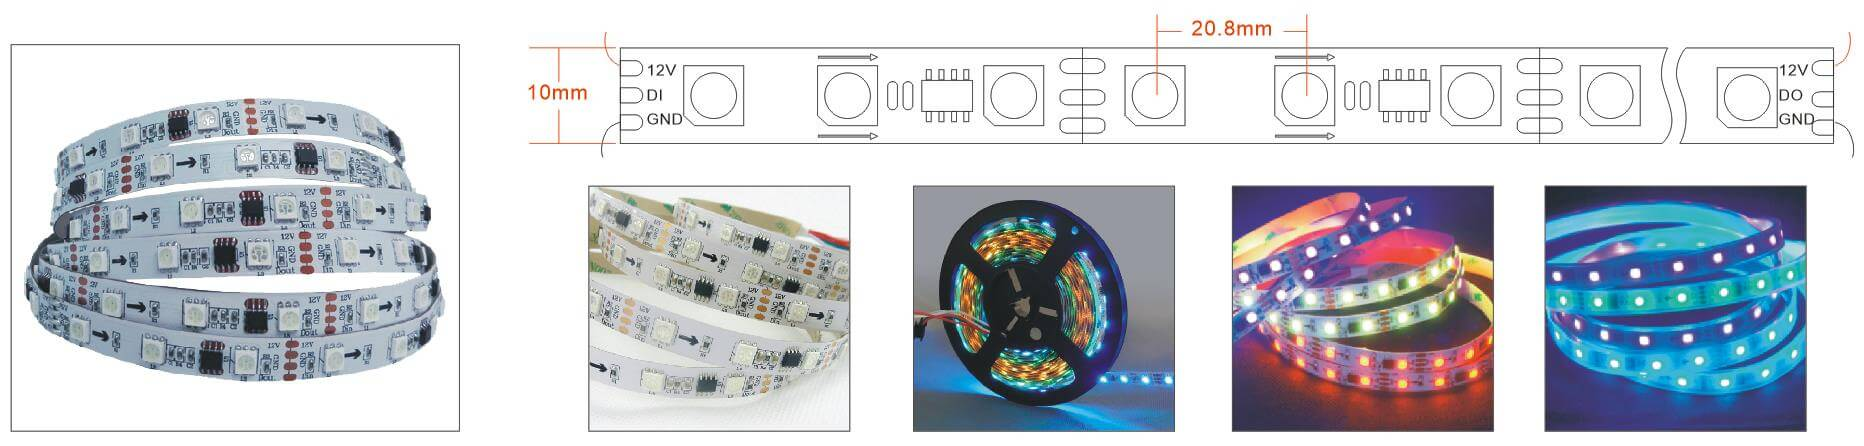 ws2811 addressable led strip 16L 48LED